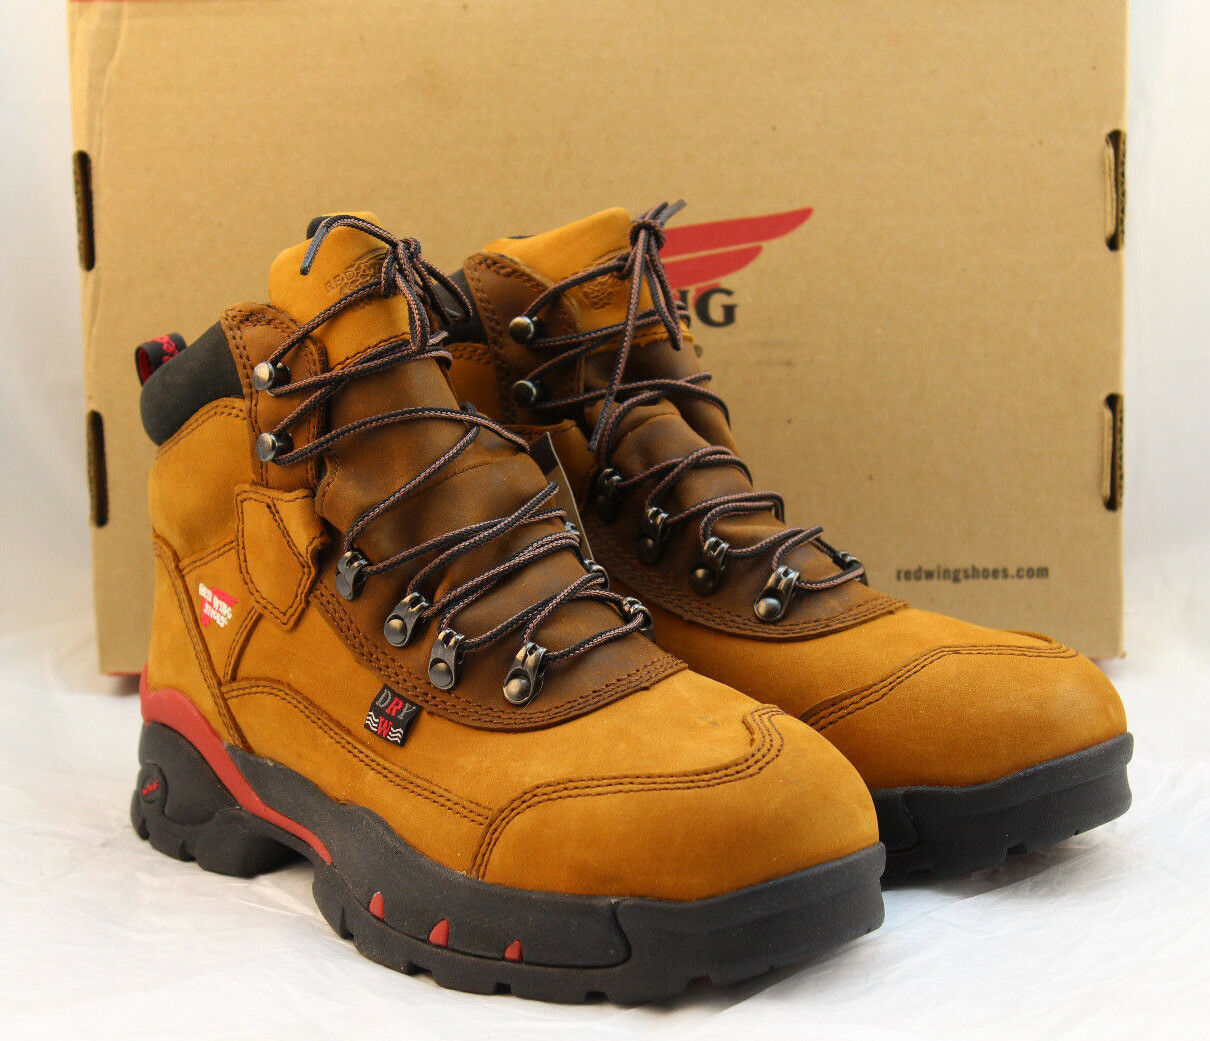 "NIB RED WING 2691 Size 7.5 M Safety Toe EH Women's 6"" Work Boots RETAIL $189"